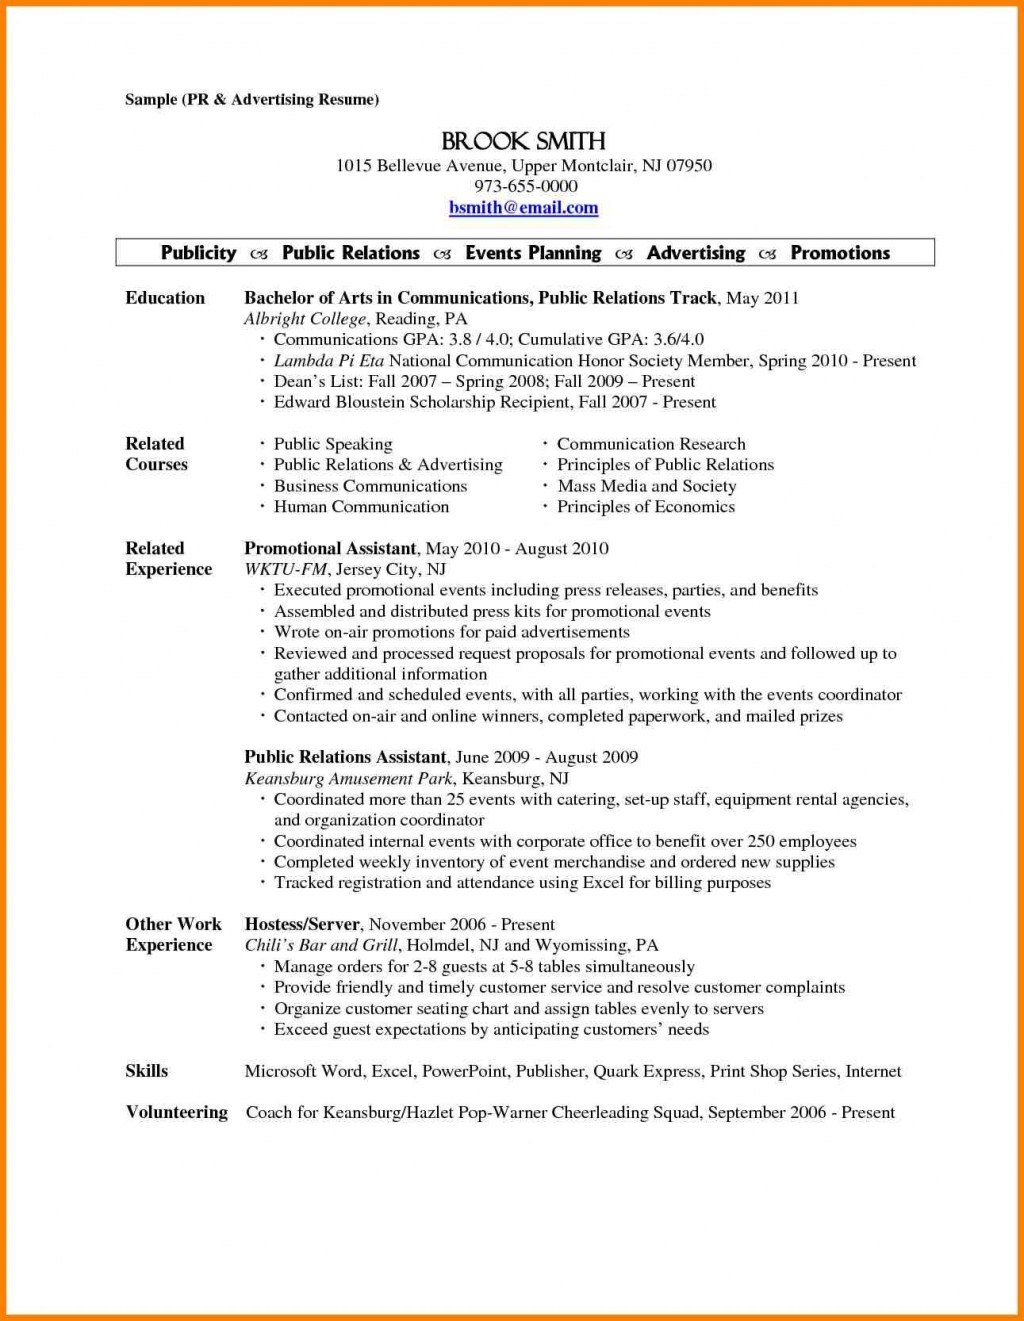 015 Benefits Of Doing Assignments Research Paper On Business In Montclair College Essay Examples Banquet Server Resume Example Free Templates Hall Samplerant Obje Question Public Staggering Relations White Sample Large